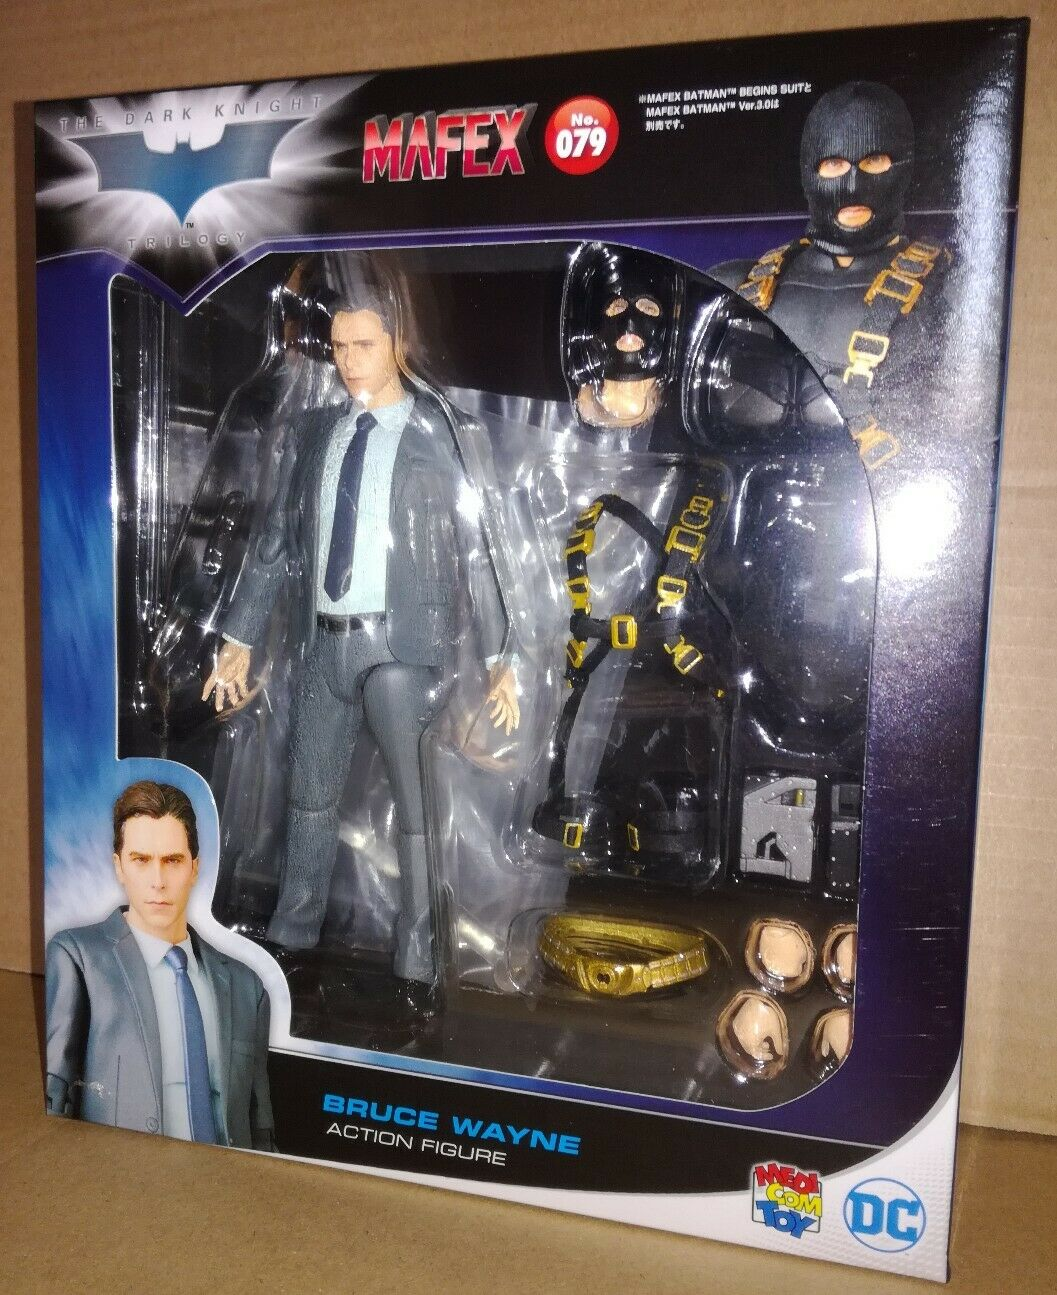 Medicom mafex 079 batman begins bruce wayne the dark knight rises dc comics 79